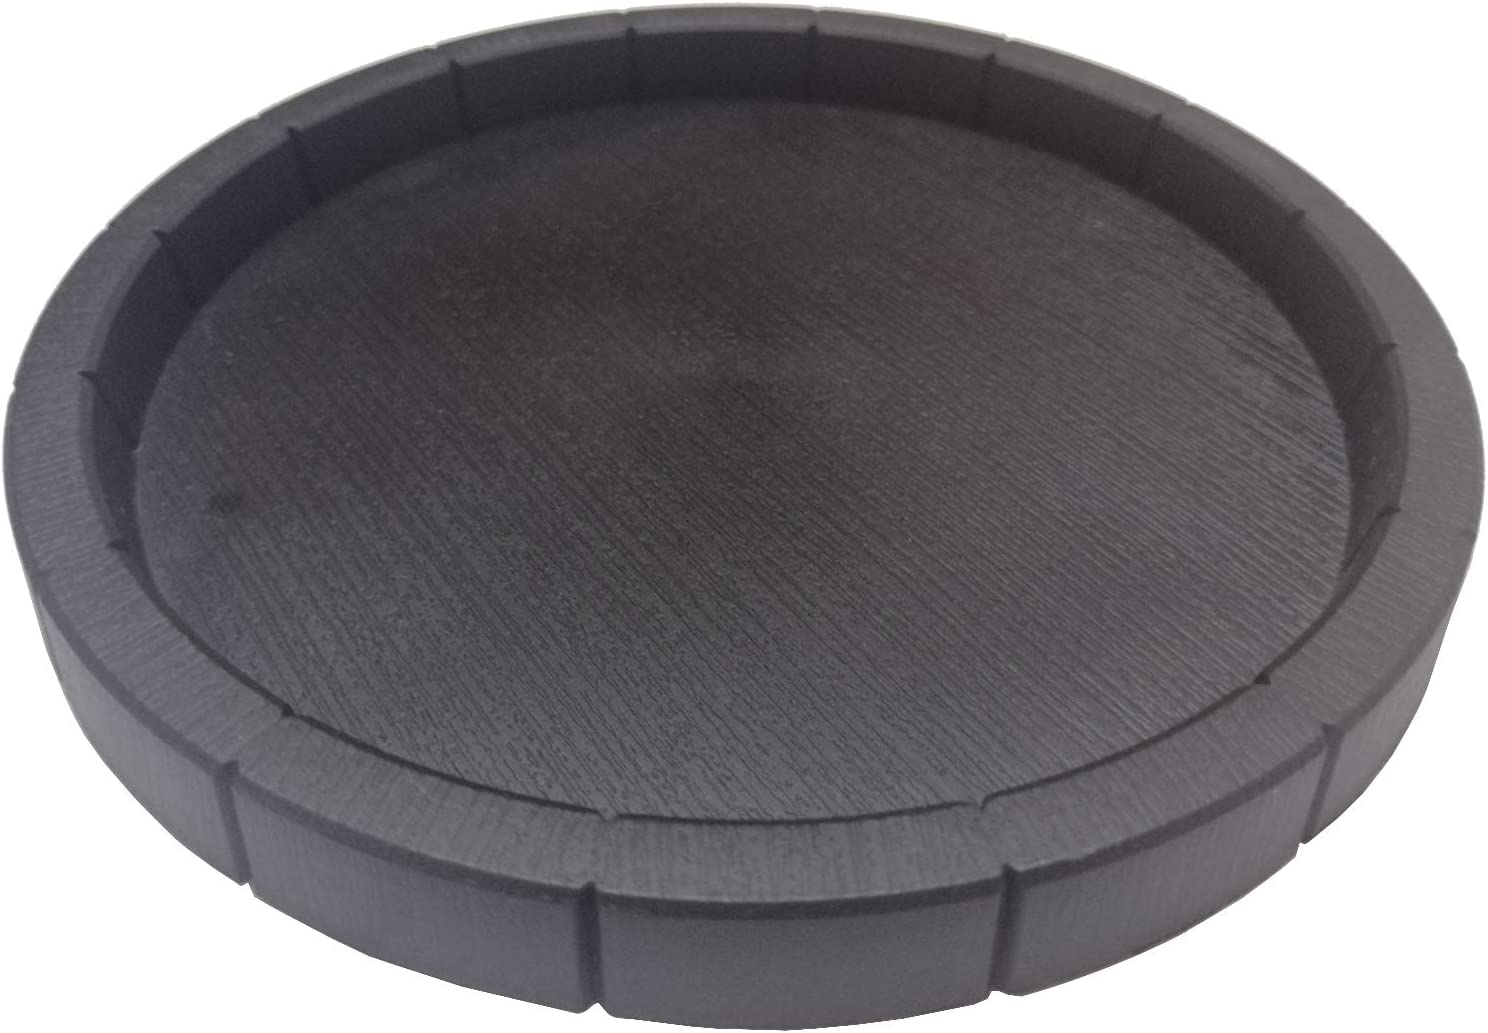 Fuongee Reptile Feeding 2021 Large special price !! Dish Bowl D and Food Tortoise Water